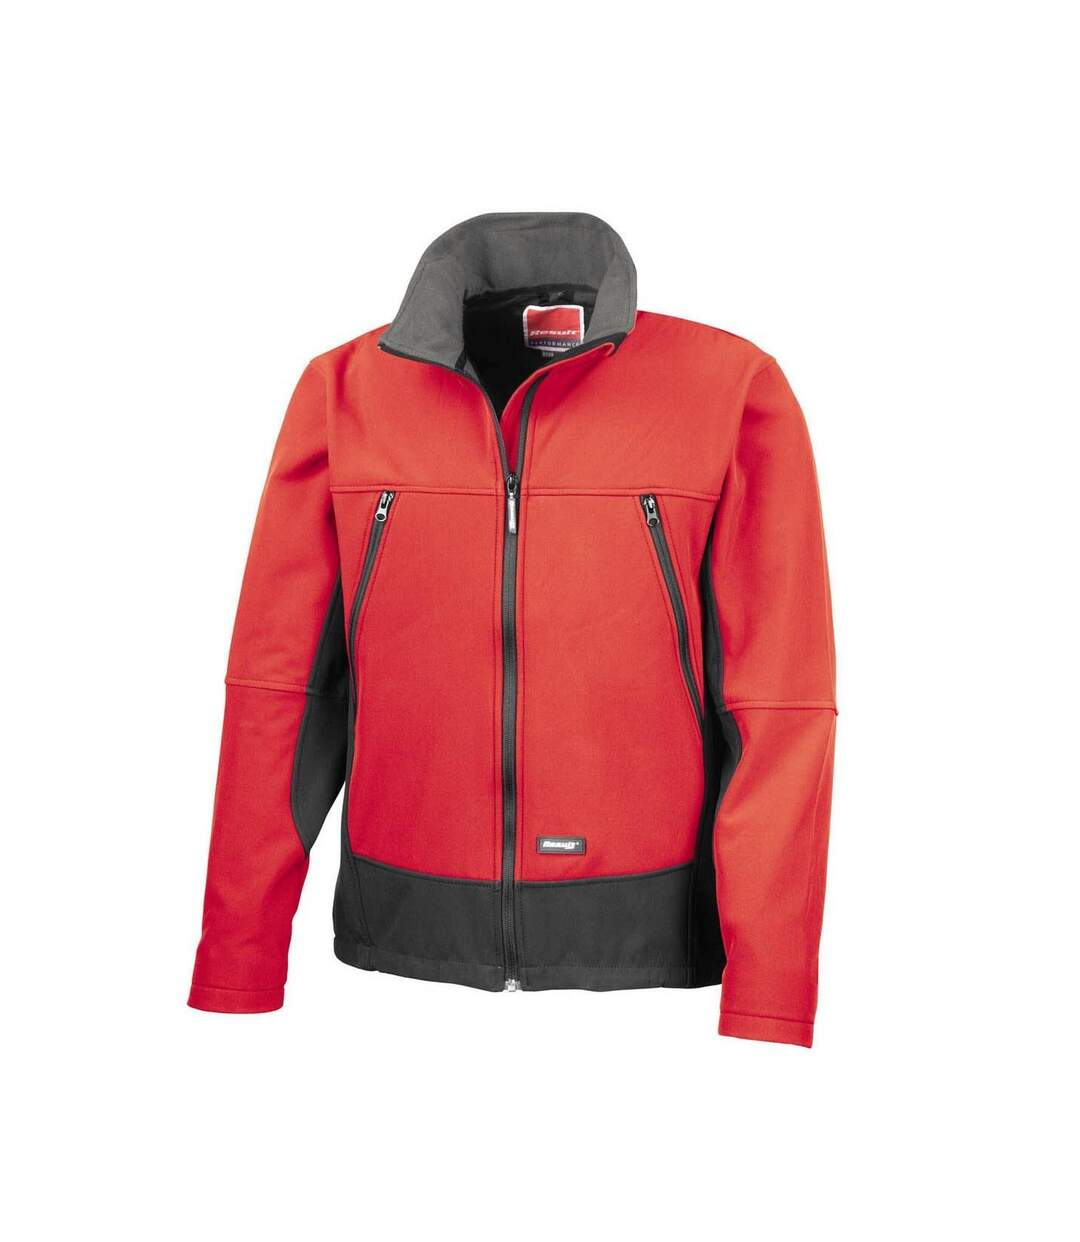 Result Mens Softshell Activity Waterproof Windproof Jacket (Red/Black) - UTBC856